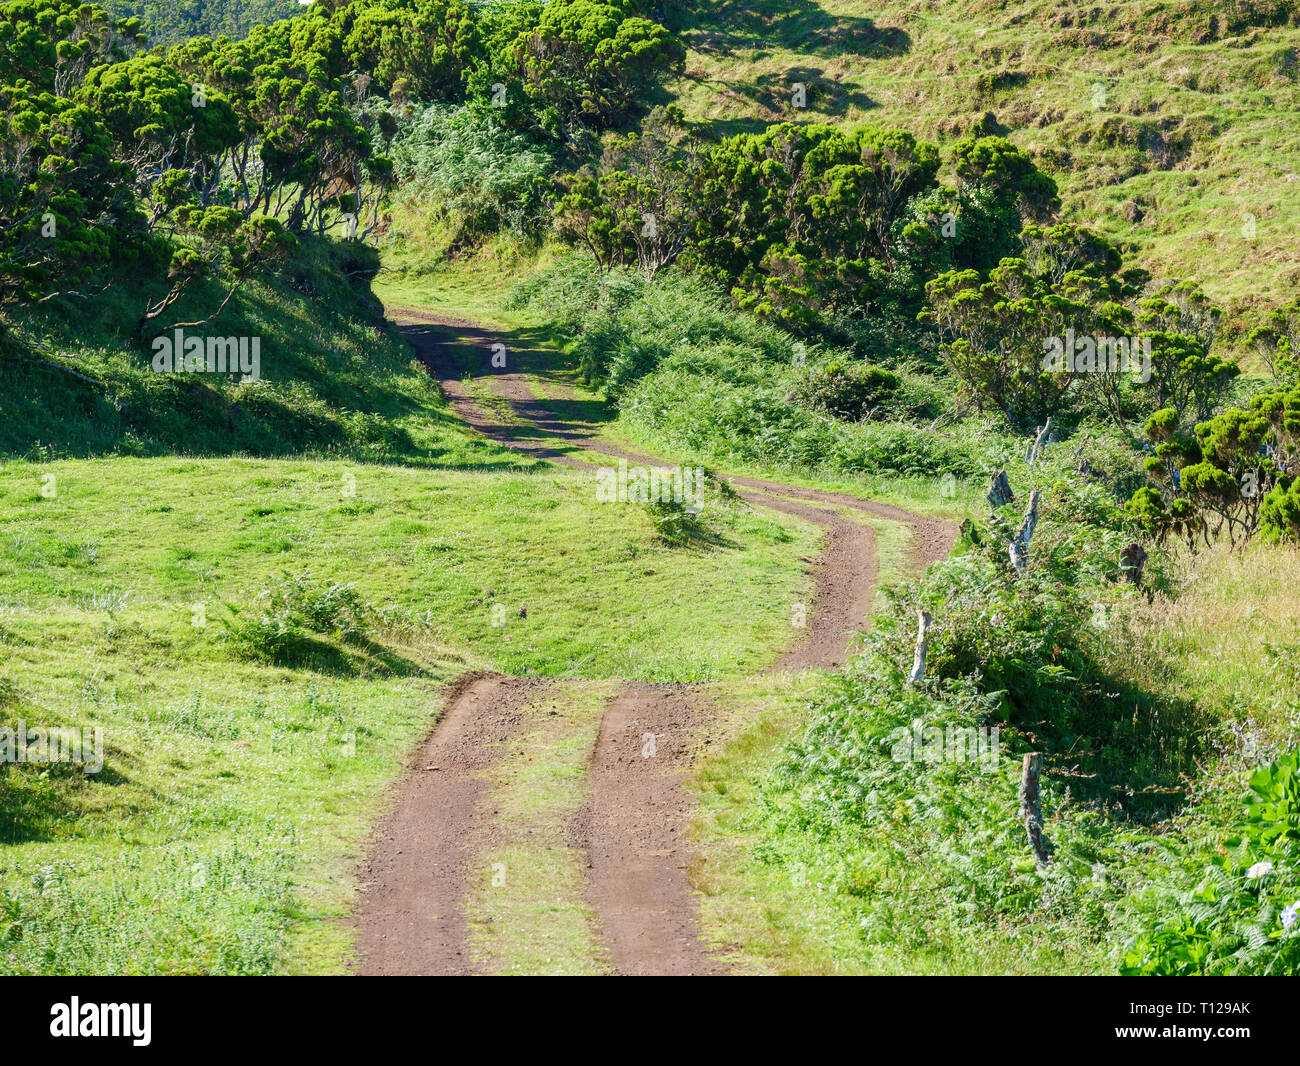 a track across the fields leading to a vanishing point in the image center on the island of Azores Portugal Europe - Stock Image